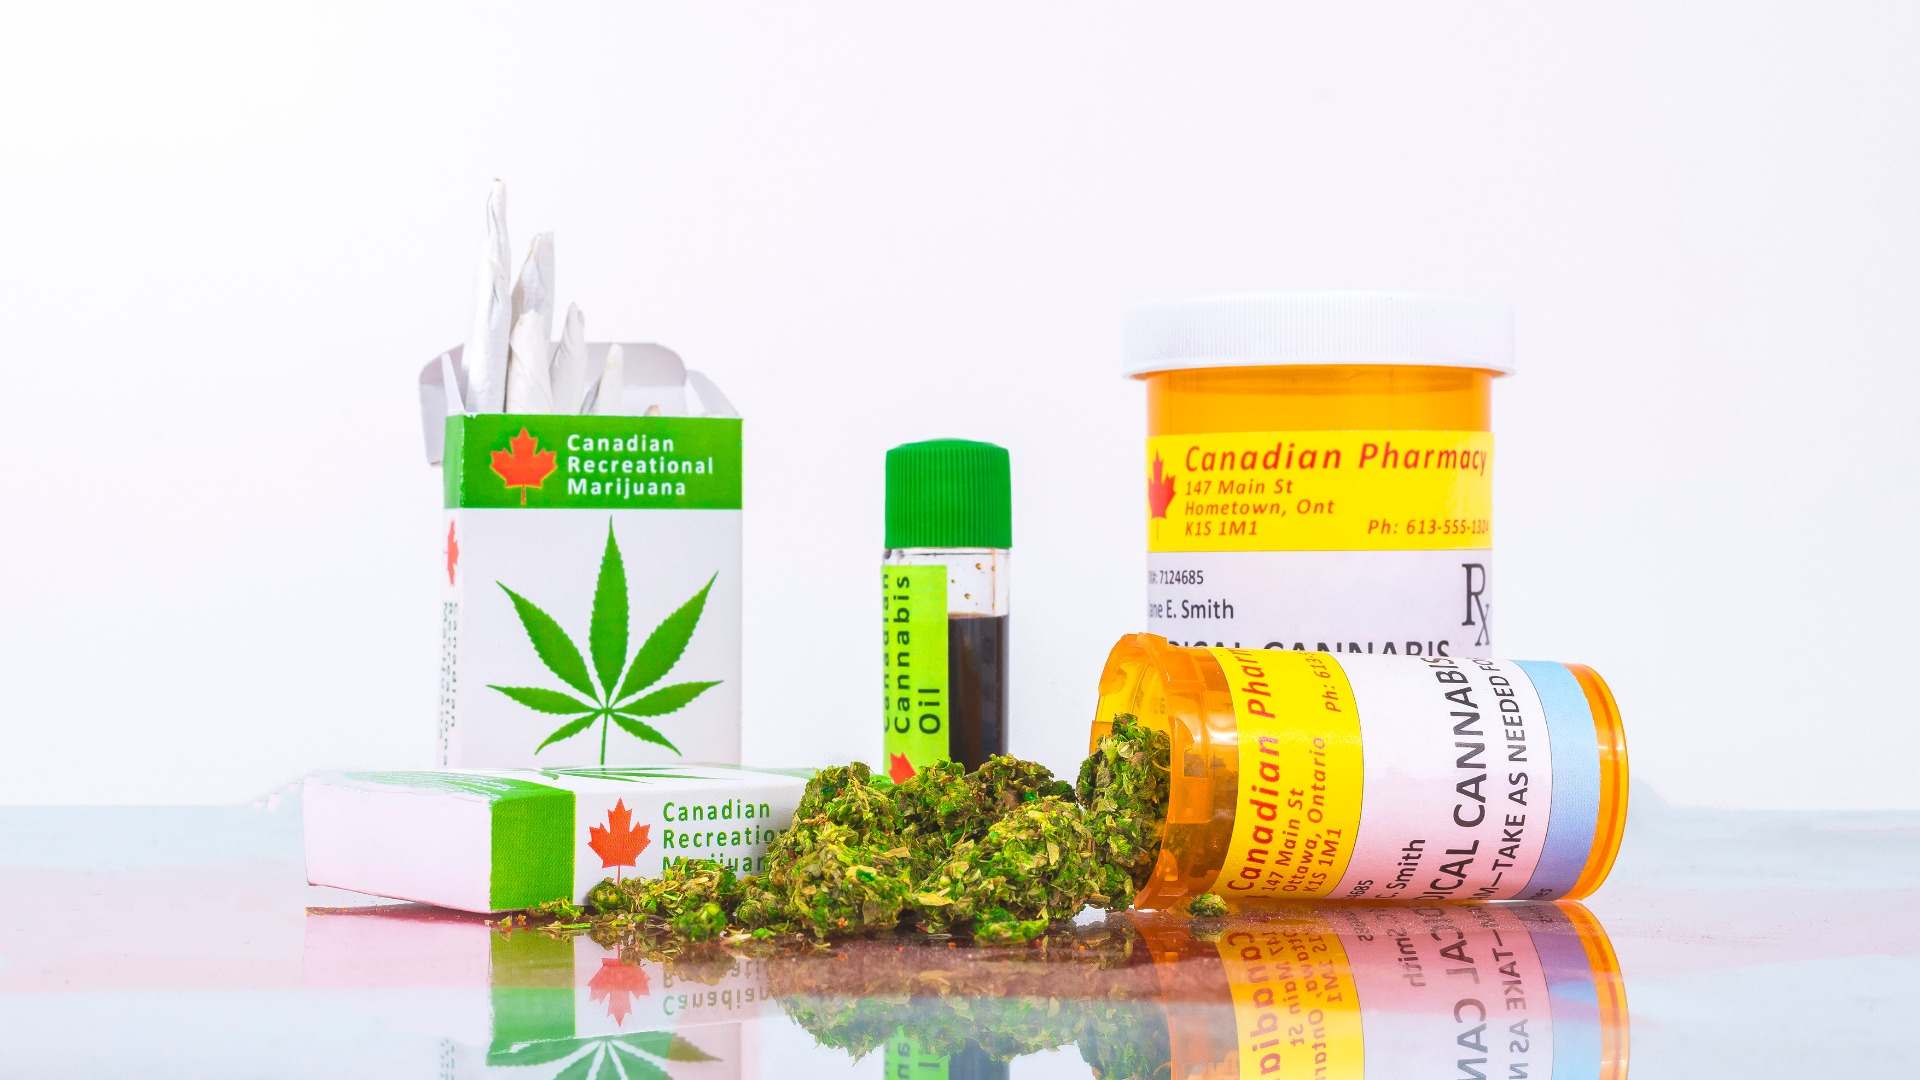 Medical cannabis bottles and prescription bottles